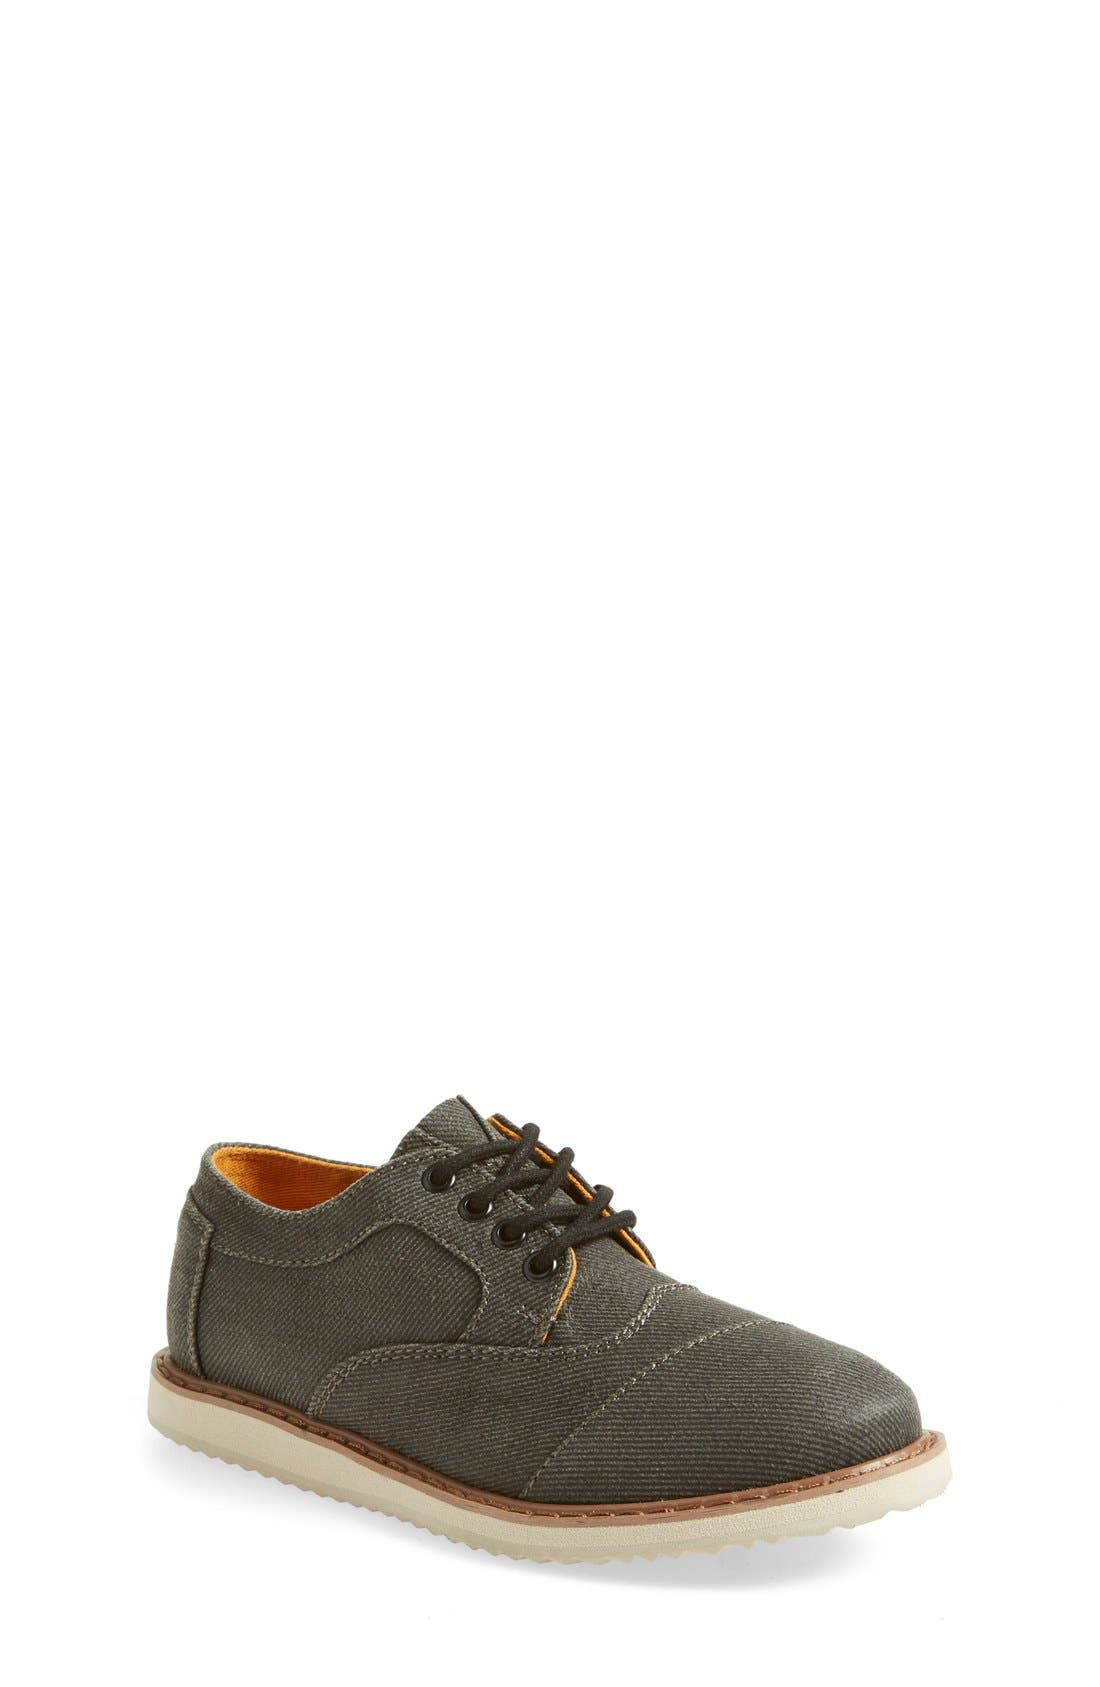 TOMS Classic Brogue Oxford